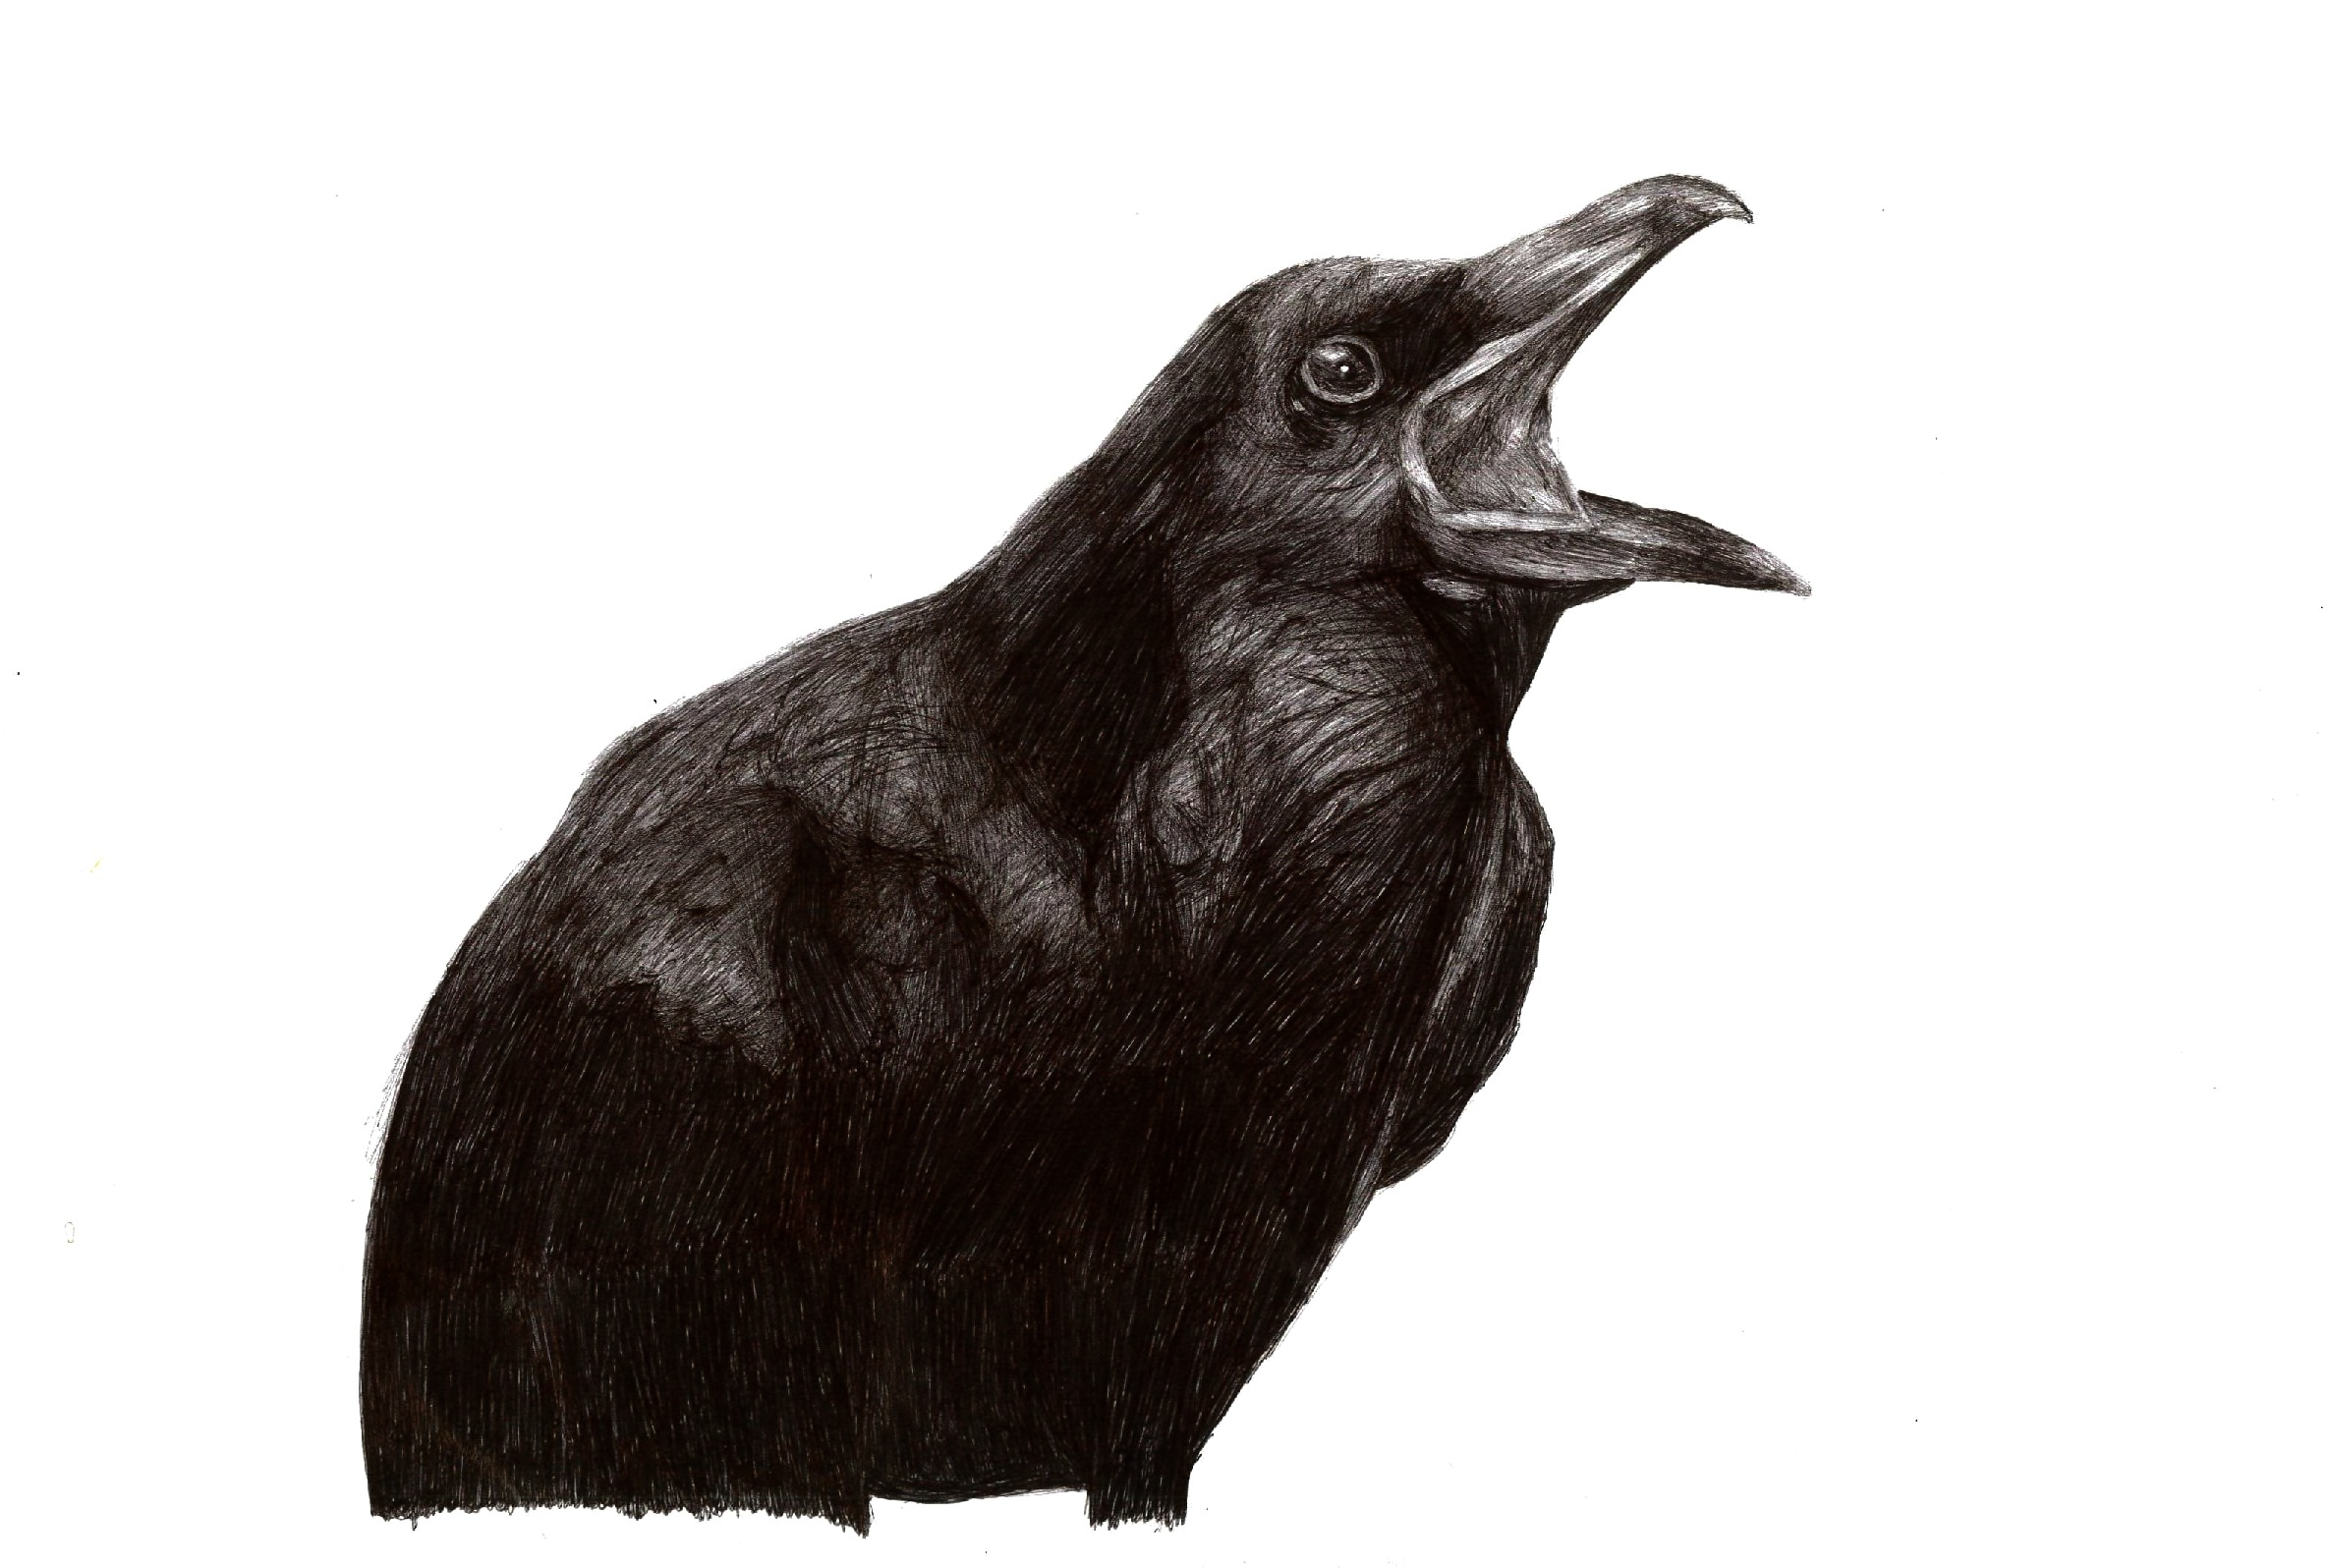 Drawn raven maleficent 'Maleficent' raven images in has